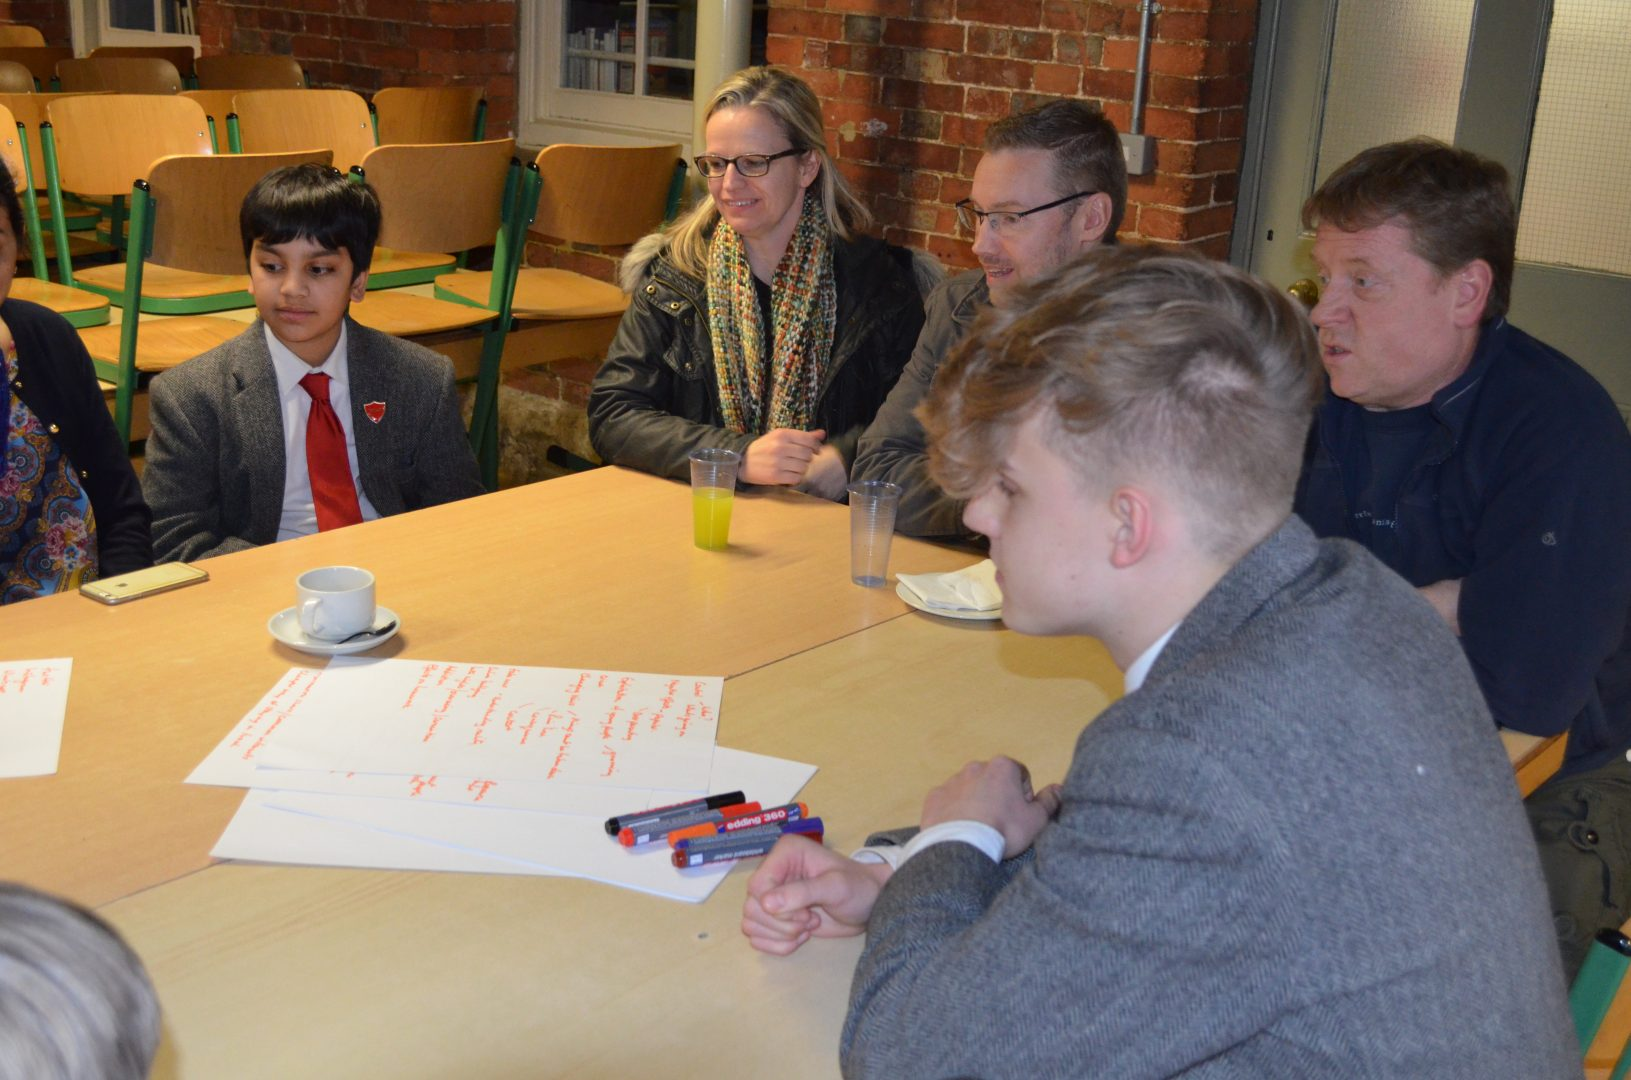 QHS pupils and parents engage at after class session